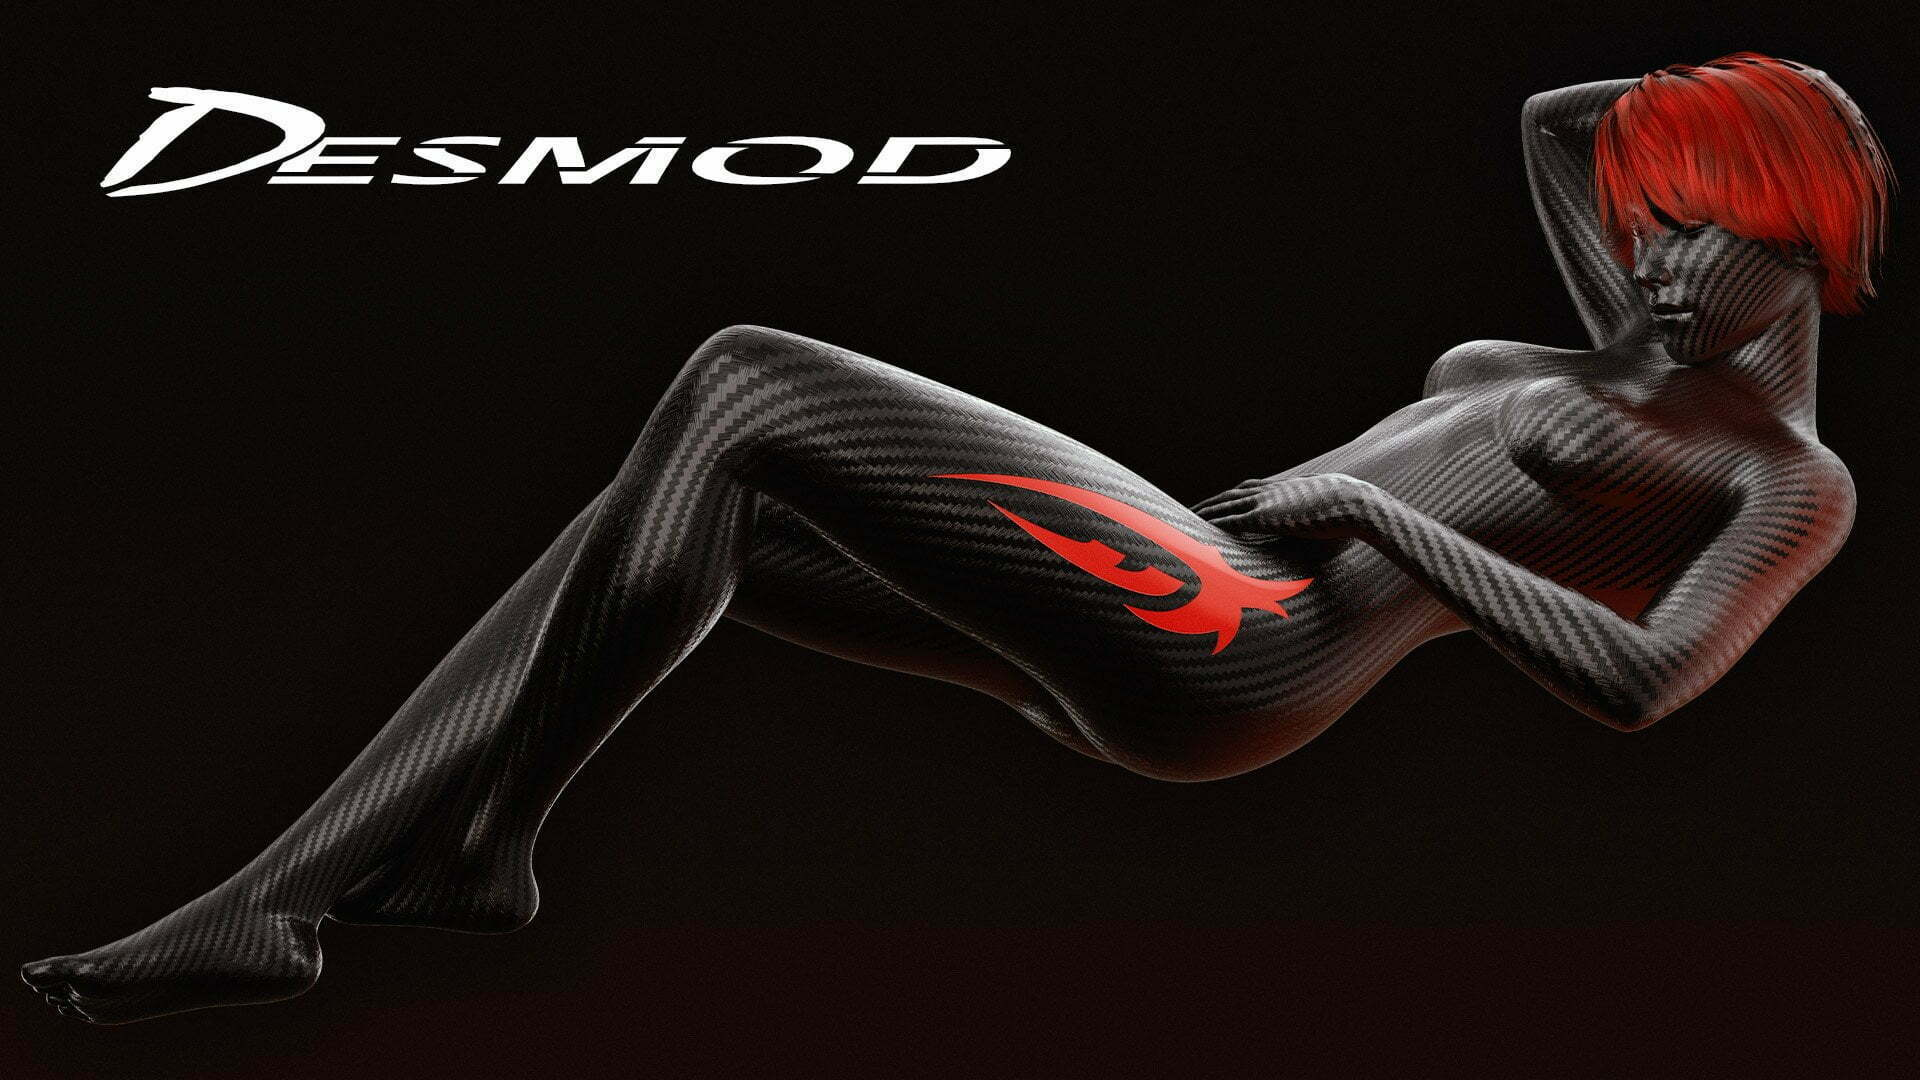 Desmod Racing Fashion | Rollup Art by Mire Studio